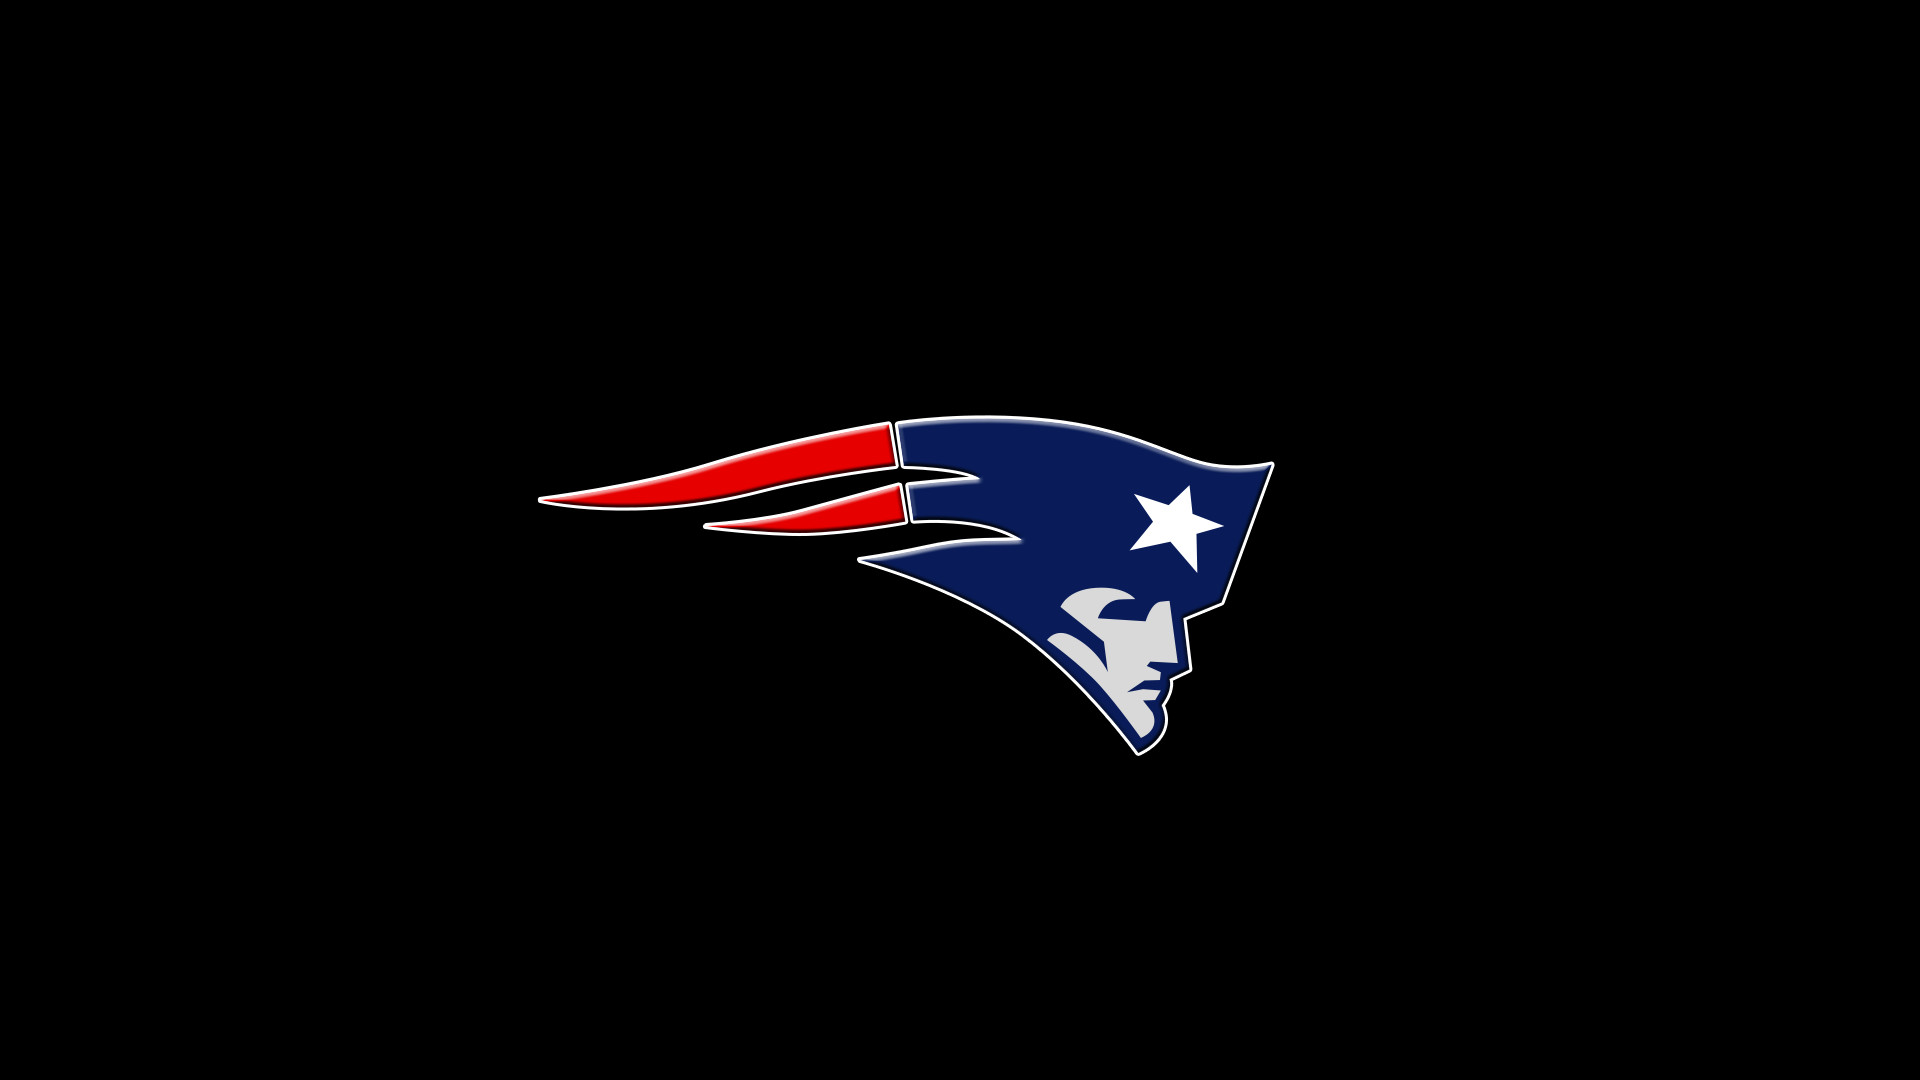 1920x1080 New England Patriots Wallpaper by cynicalasshole on DeviantArt 1920×1080  Patriots Mobile Wallpapers (29